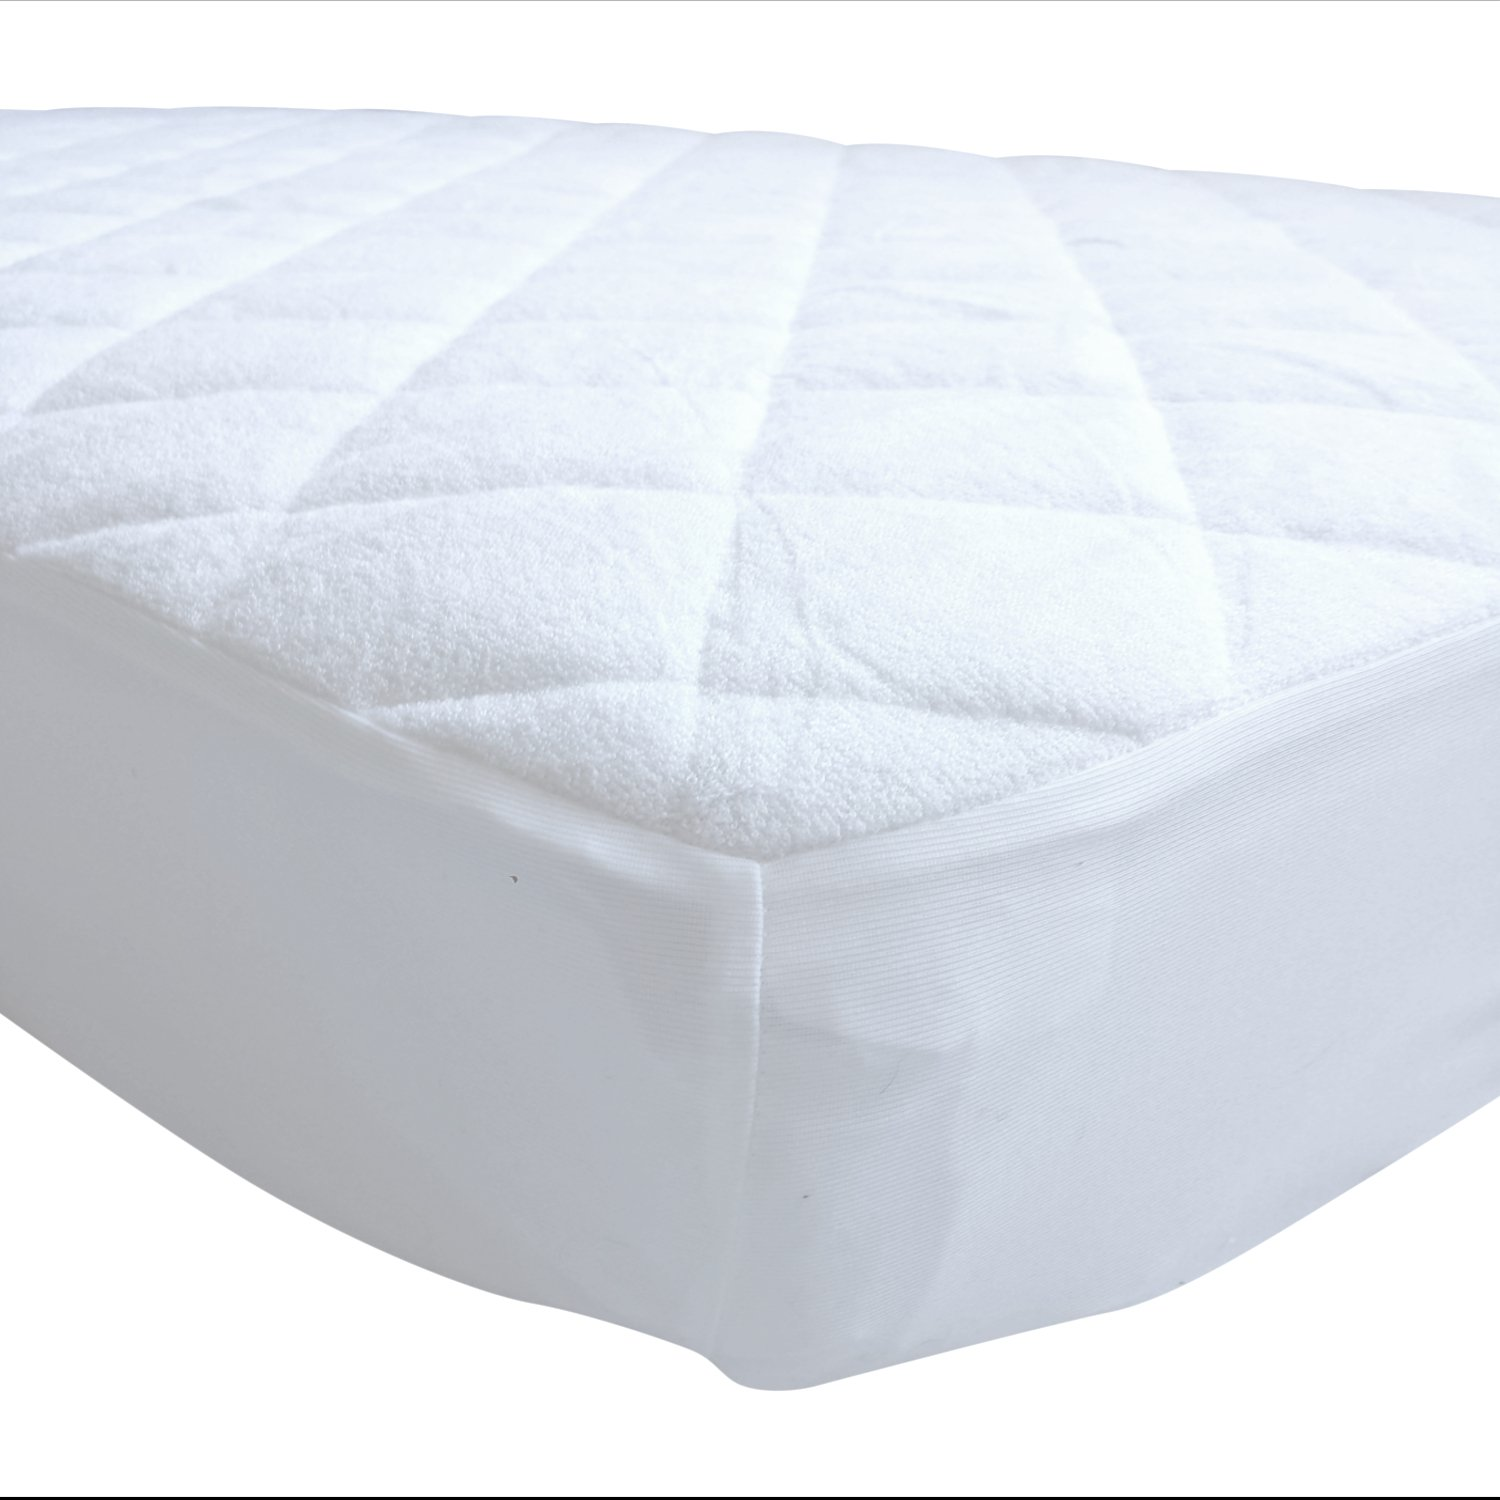 Amazon Pack N Play Crib Mattress Pad Cover Fits Pack and